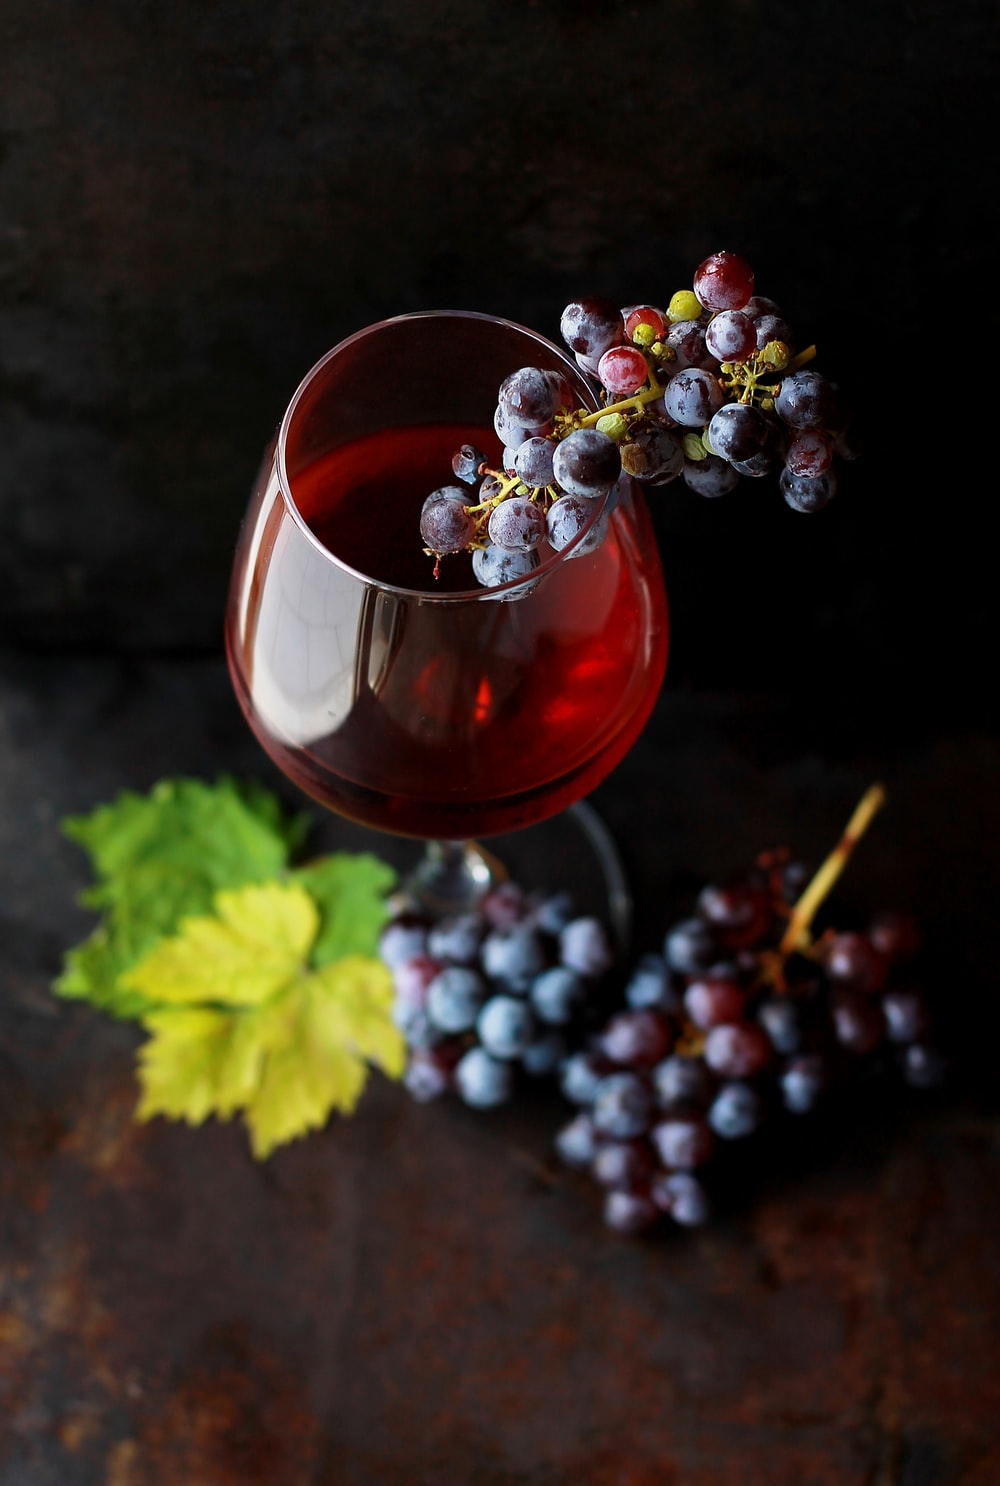 red grapes on clear glass wine